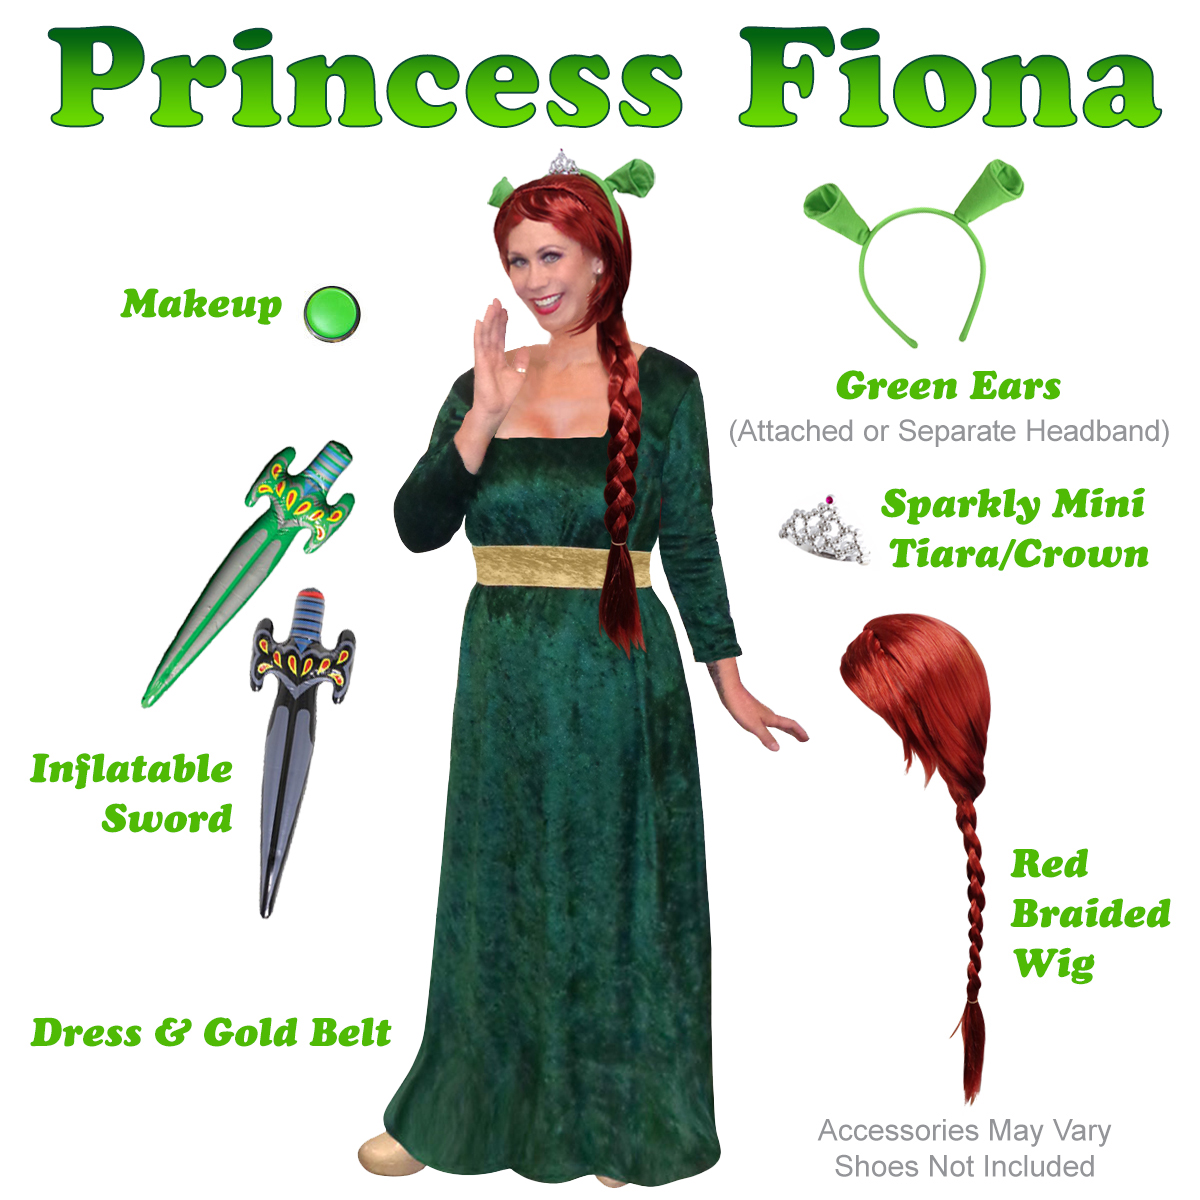 Plus Size Princess Fiona Costume from Shrek! Plus Size And Supersize Halloween Costume + Add Accessories! Sizes S-XL u0026 Plus Size 1x 2x 3x 4x Supersize 5x 6x ...  sc 1 th 225 & SALE! Plus Size Princess Fiona Costume from Shrek! Plus Size And ...